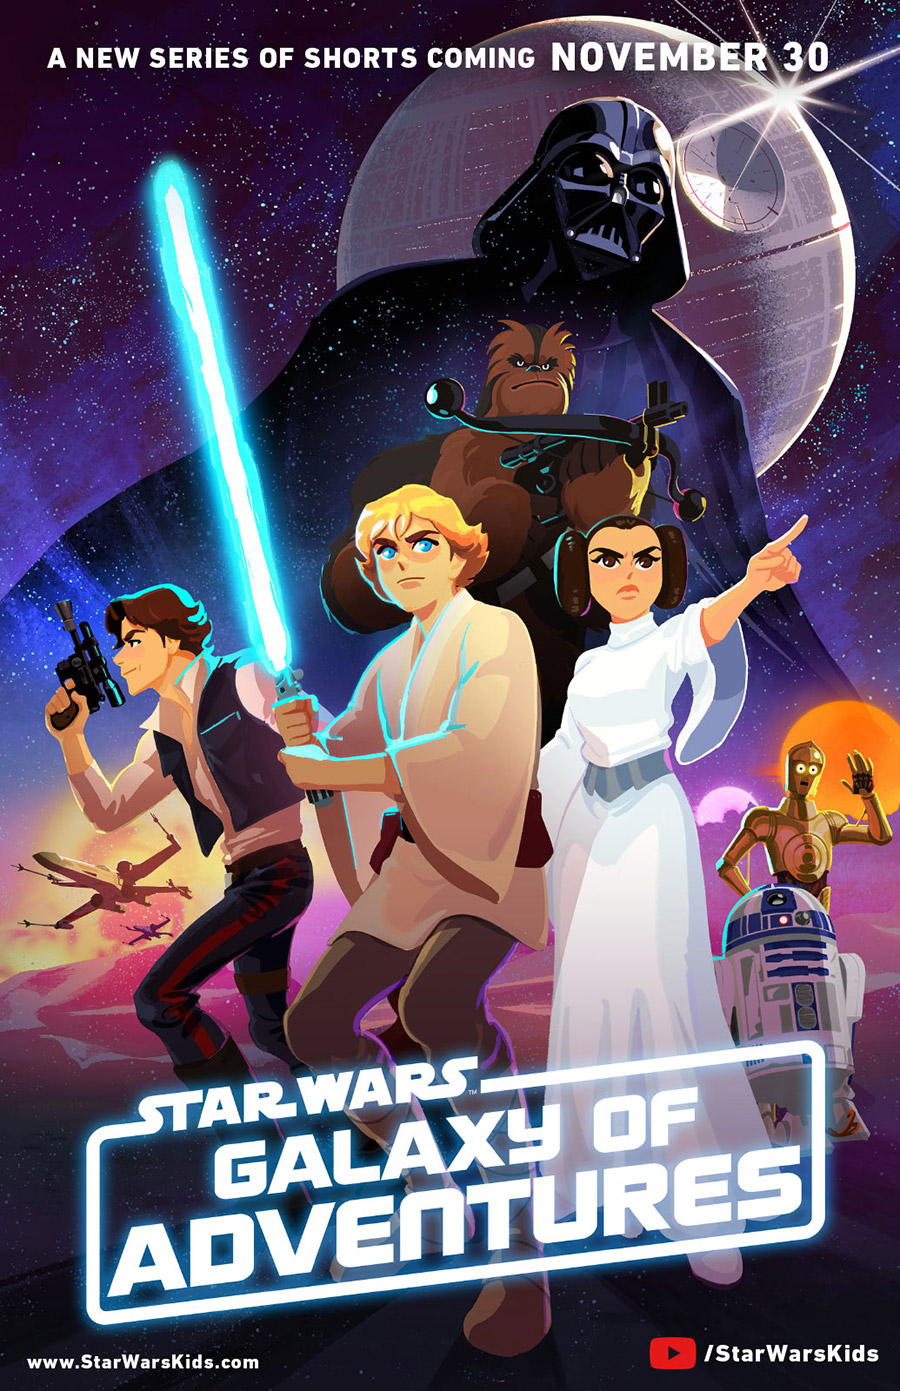 Star Wars: Galaxy of Adventures Animated Shorts Debut on Star Wars ...